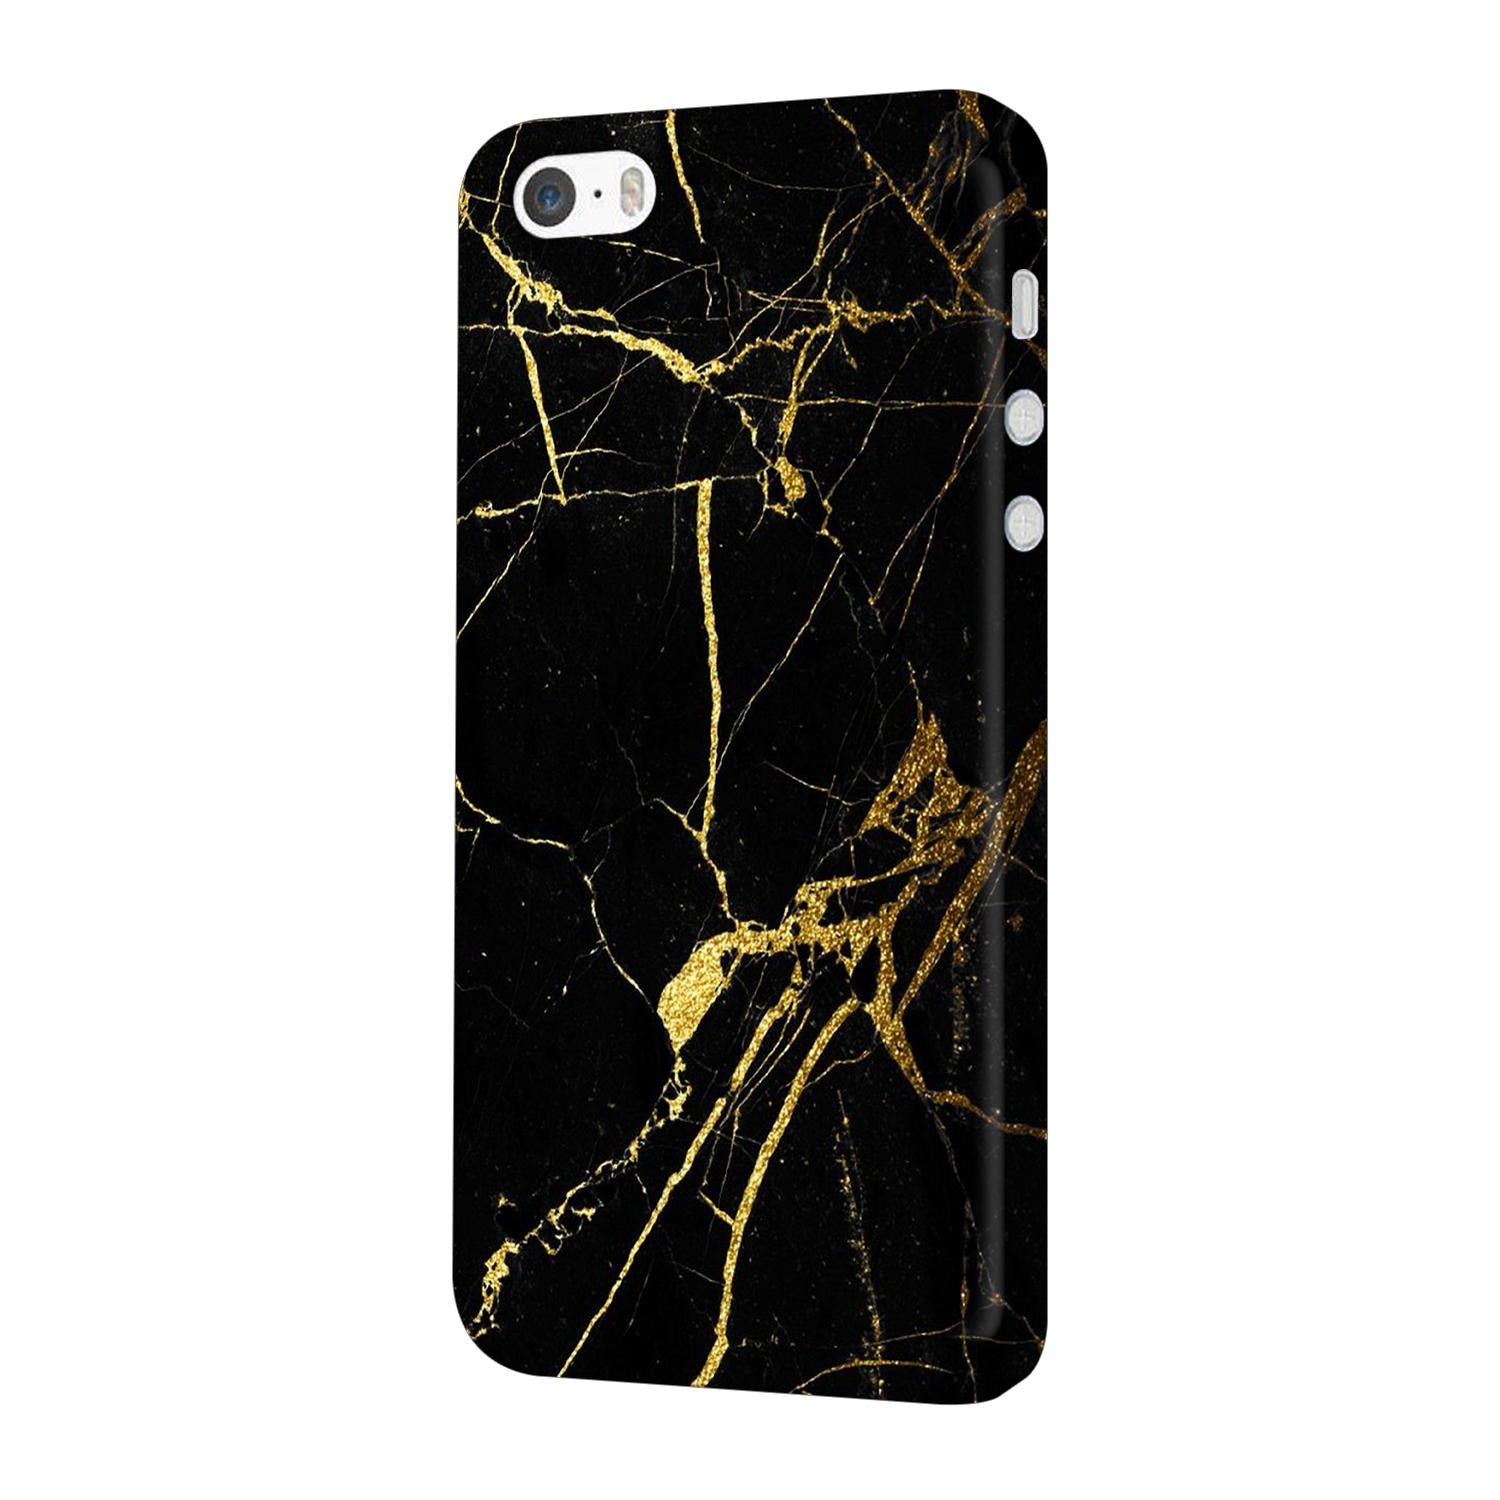 Classy Black Marble iPhone 5 Mobile Cover Case